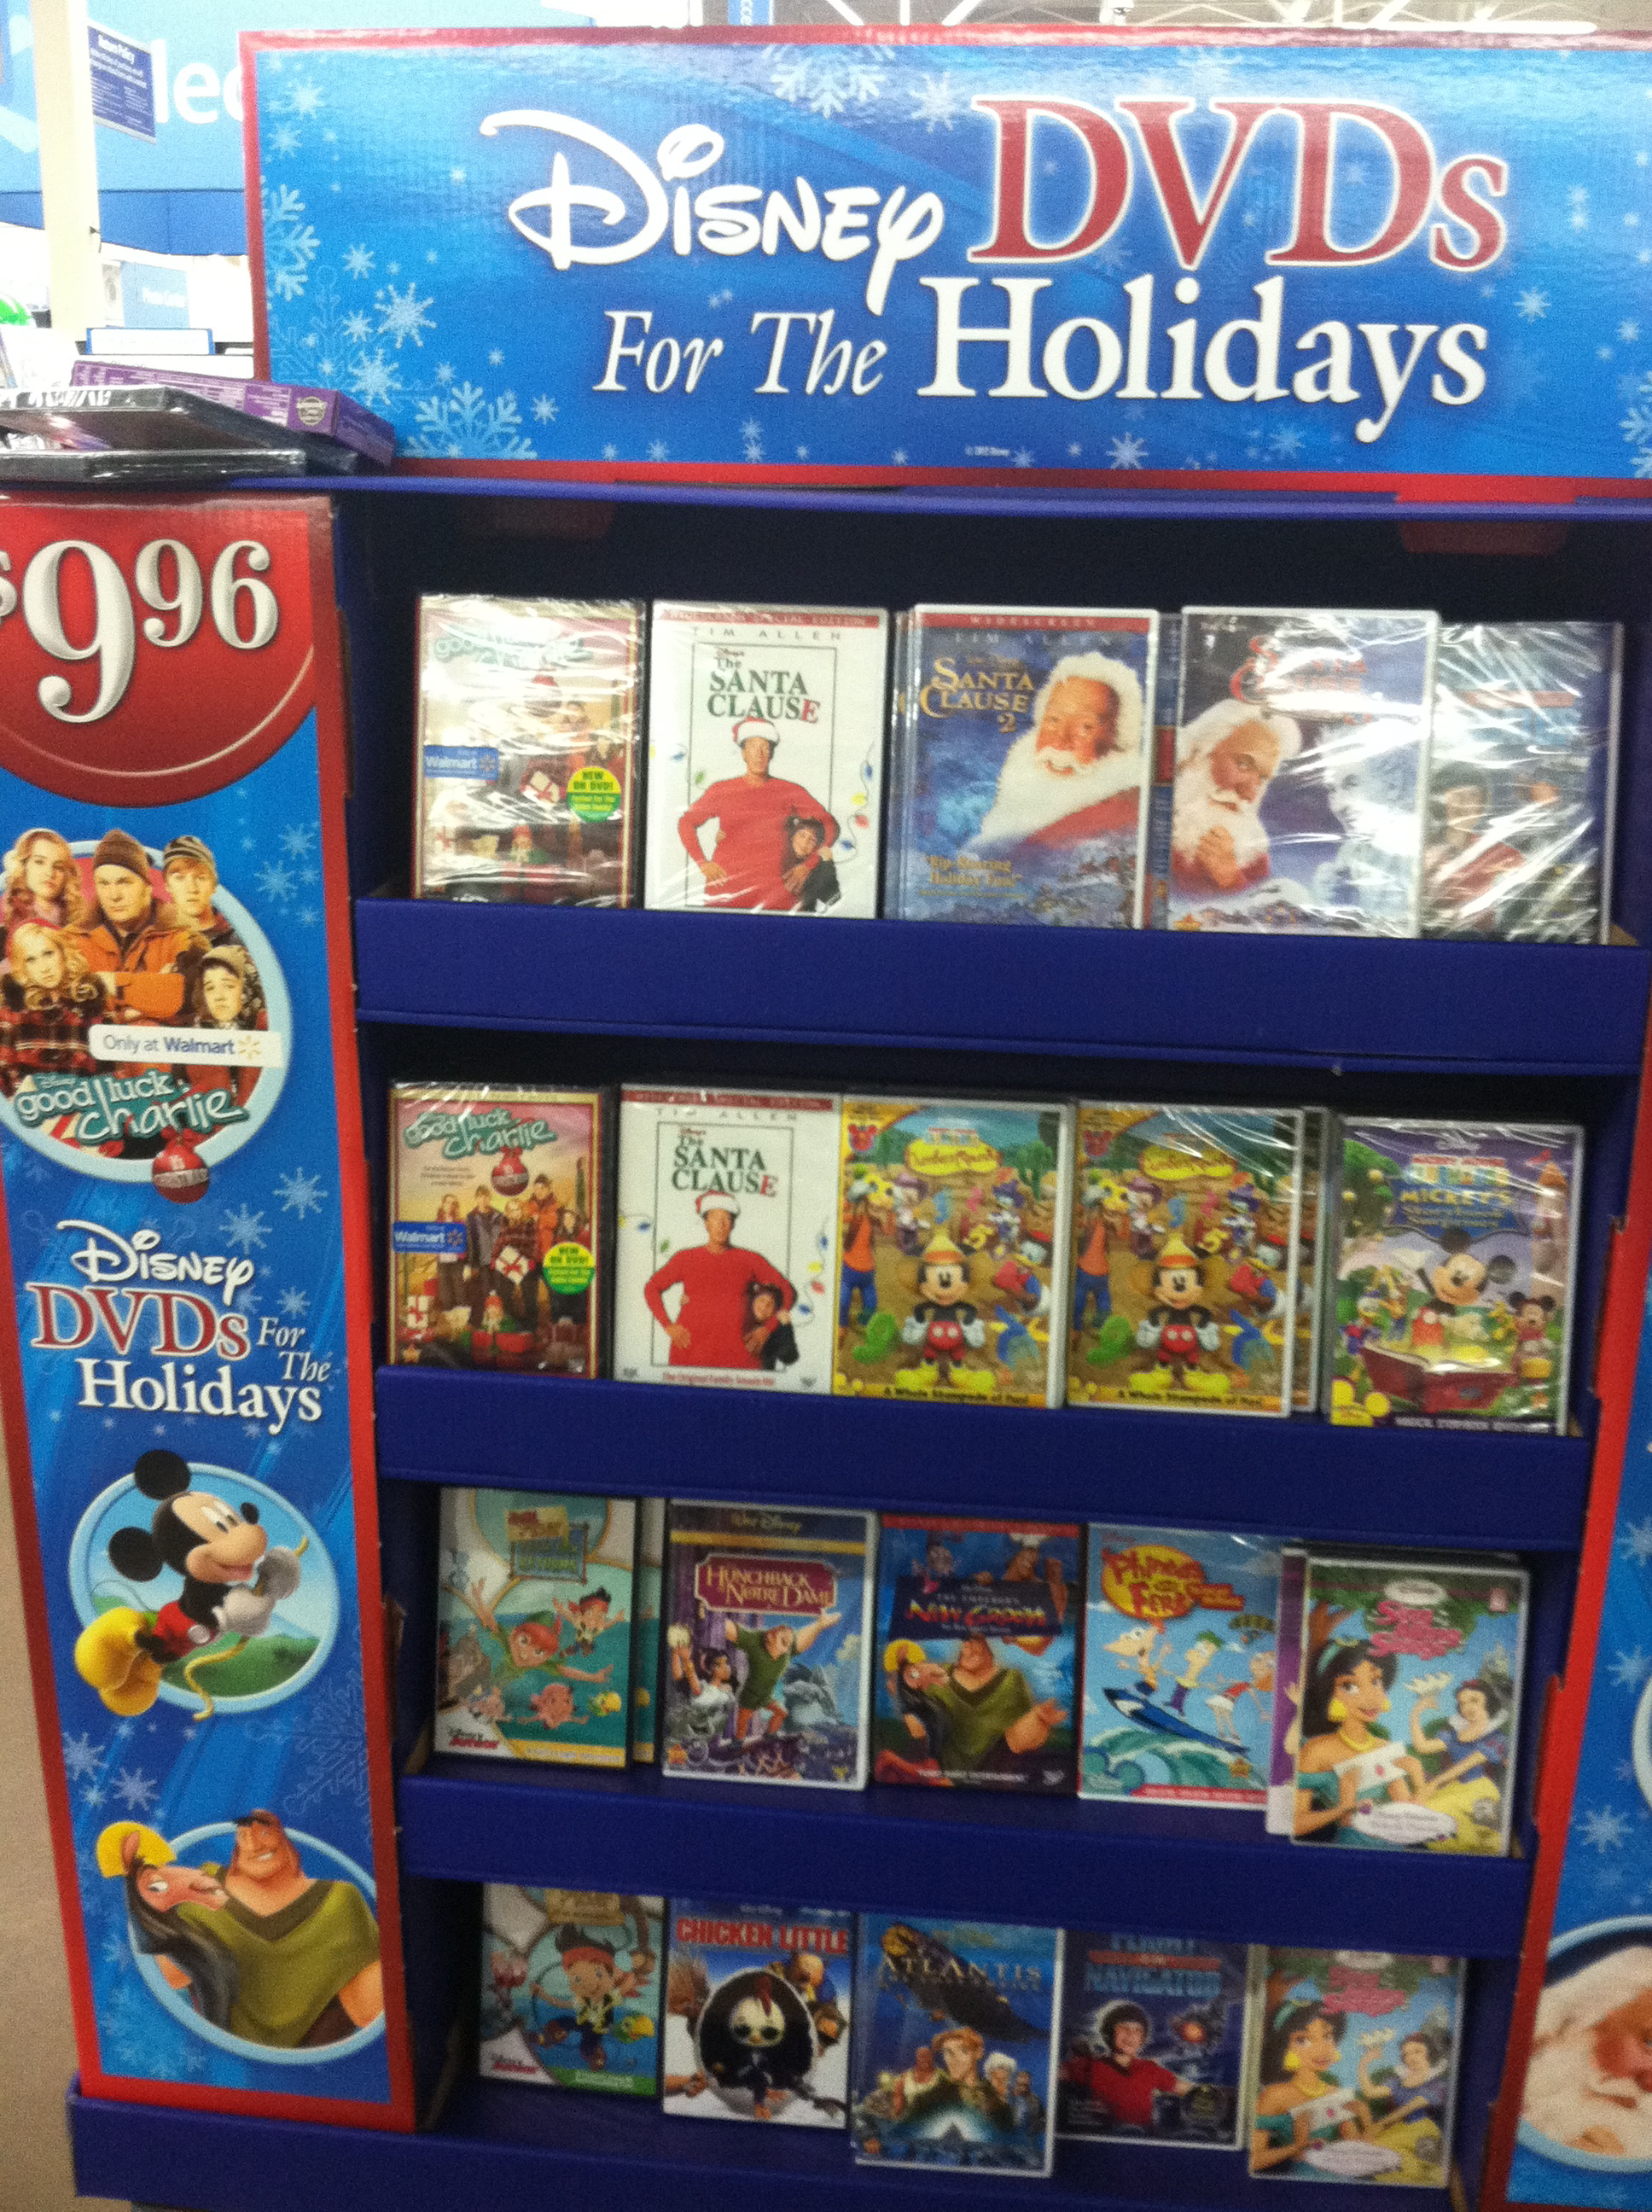 New Family Movie Coupons – Home Alone, All Dogs go to Heaven + More!